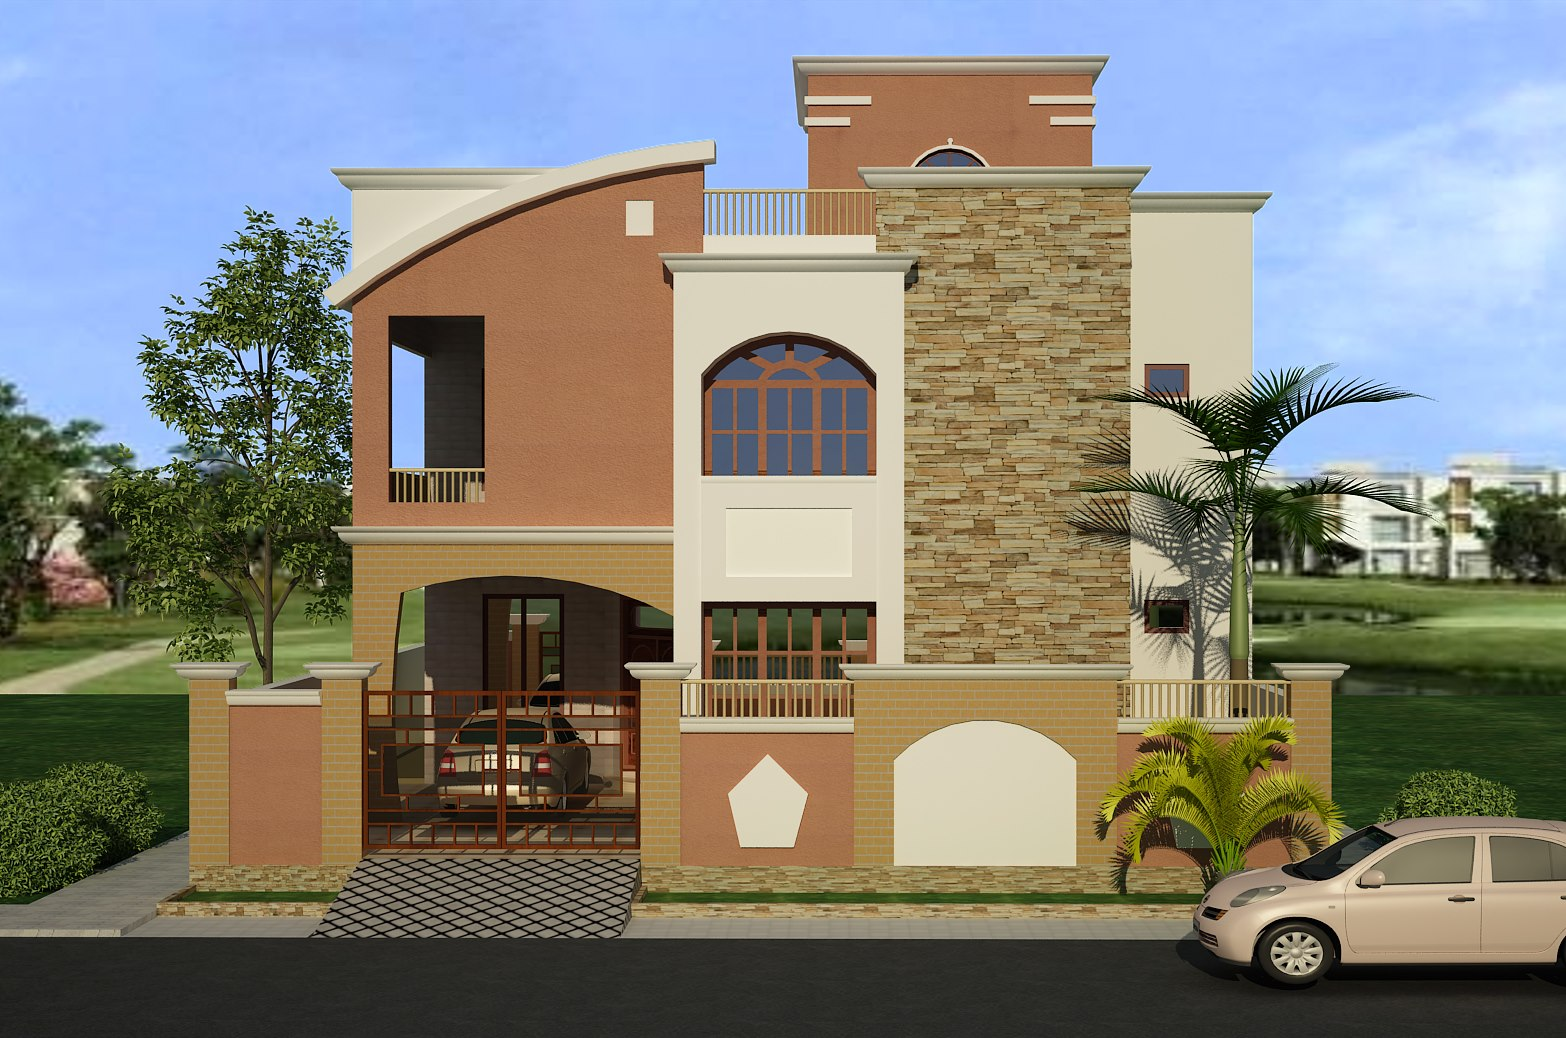 Front house elevation native home garden design for Home garden design in pakistan